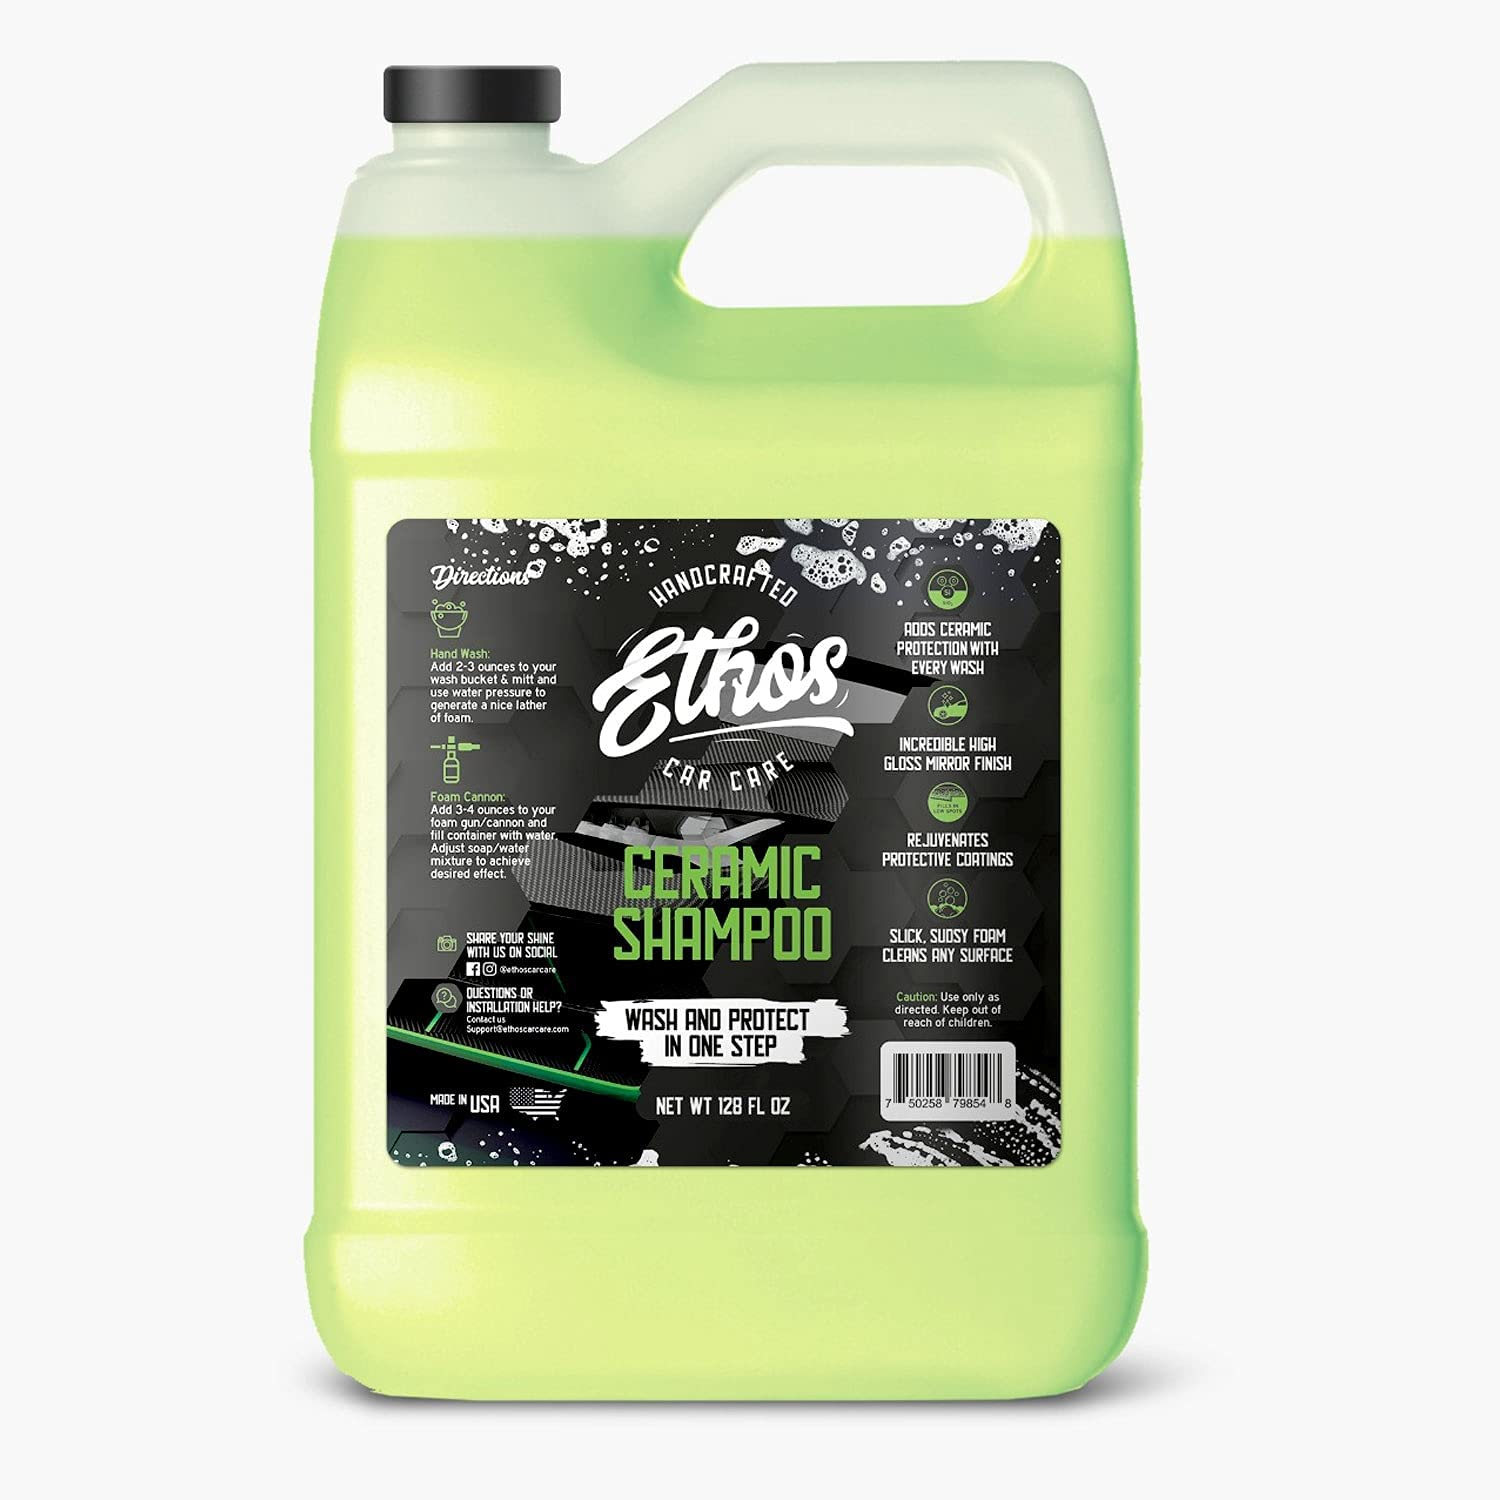 Ceramic Car Shampoo Adds Hydrophobic Protection Wash With Bargain New life Every